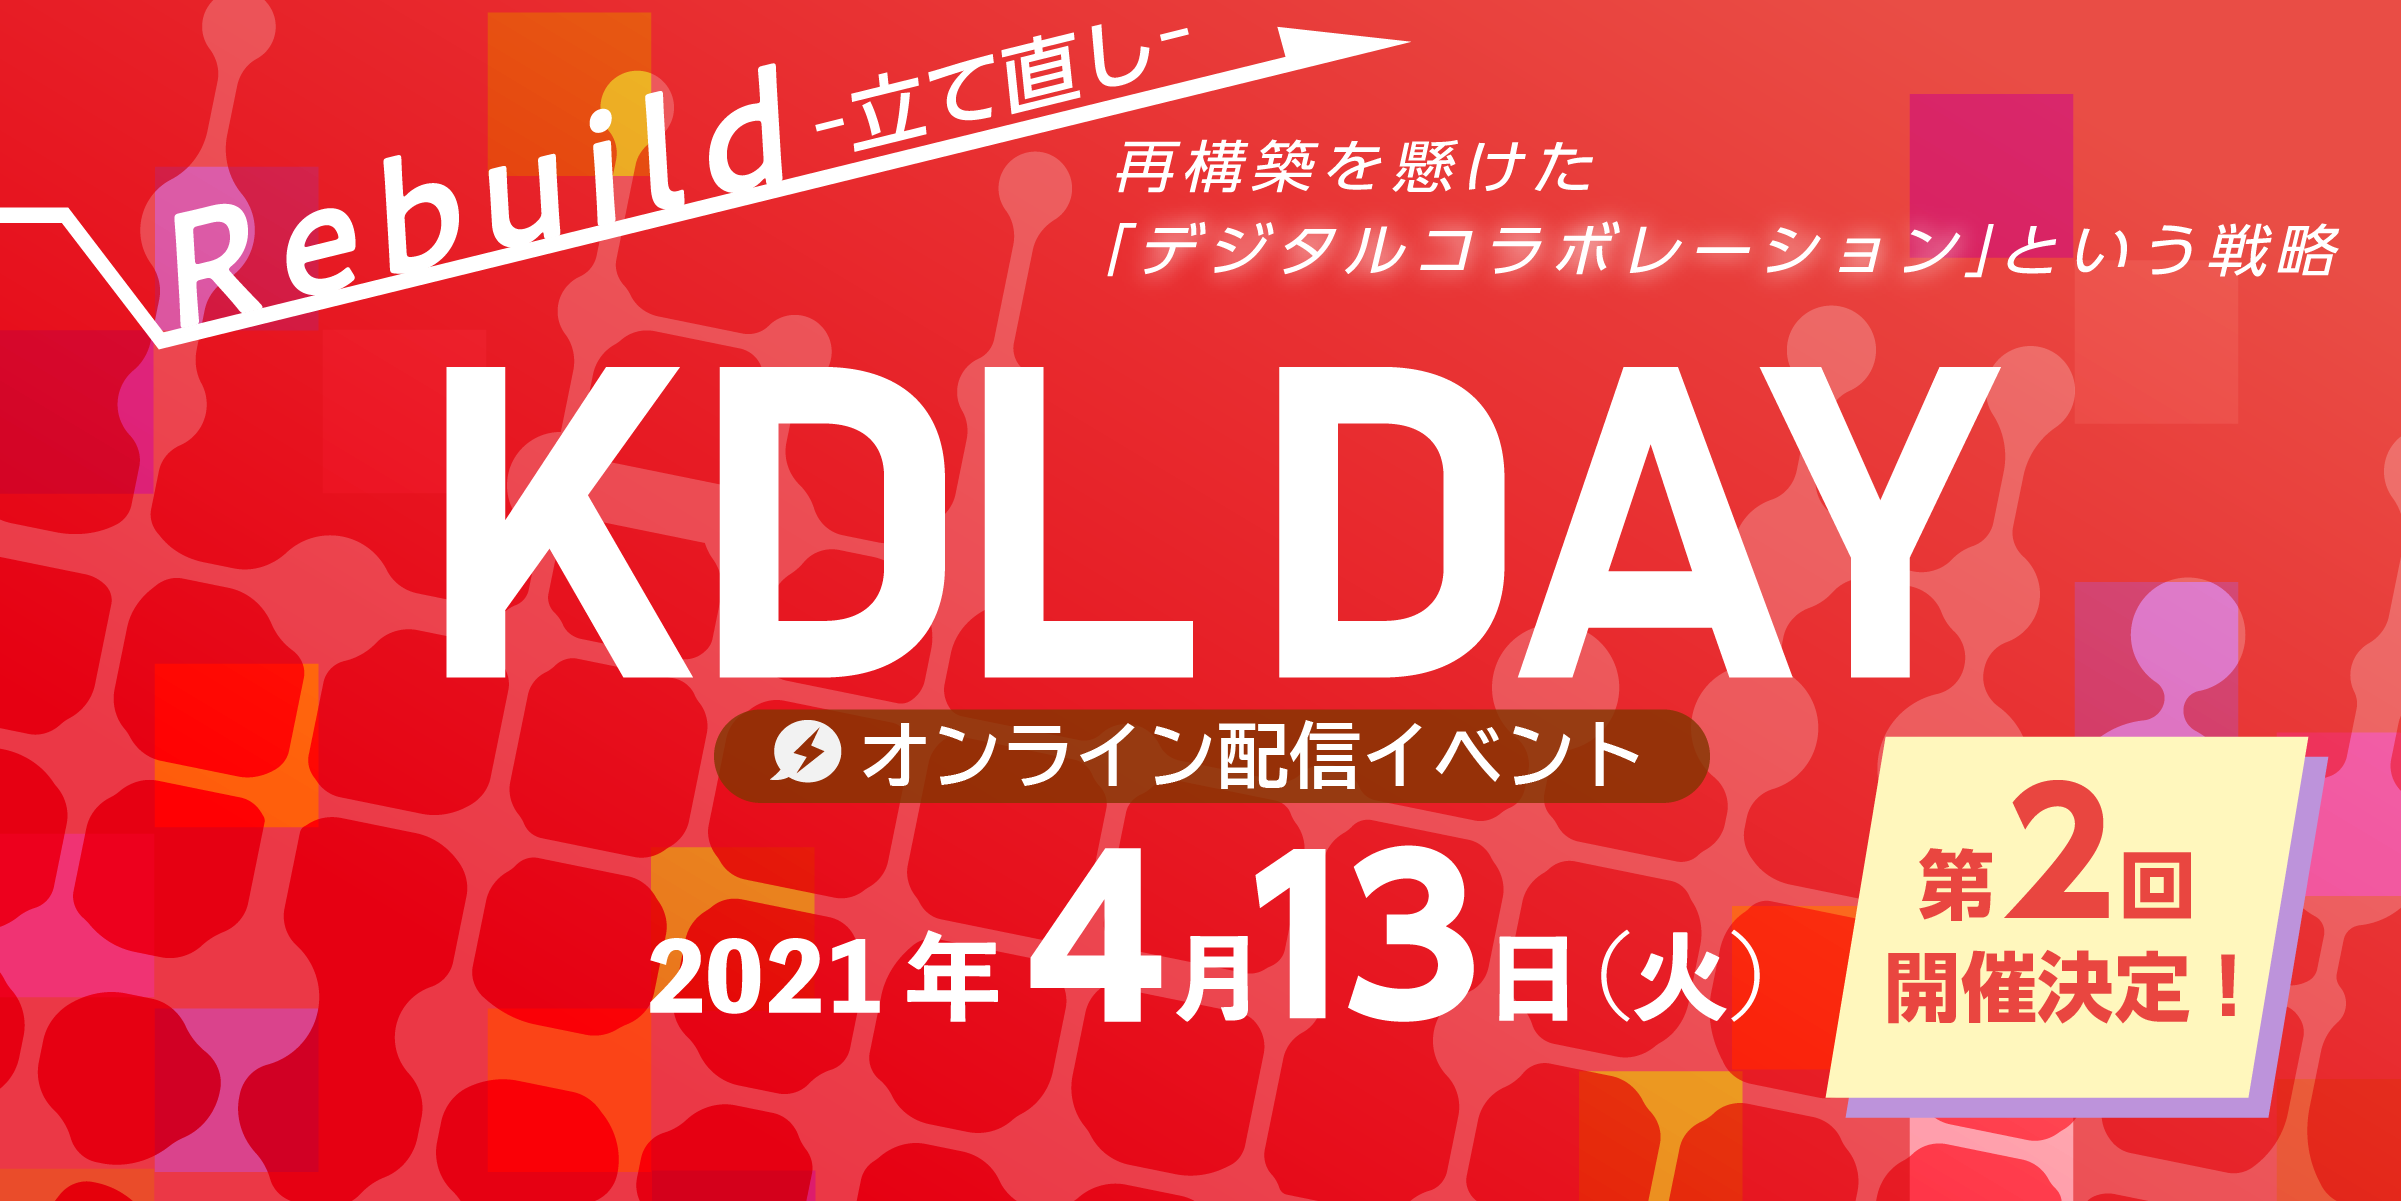 KDLDAY2_ogpv2.png